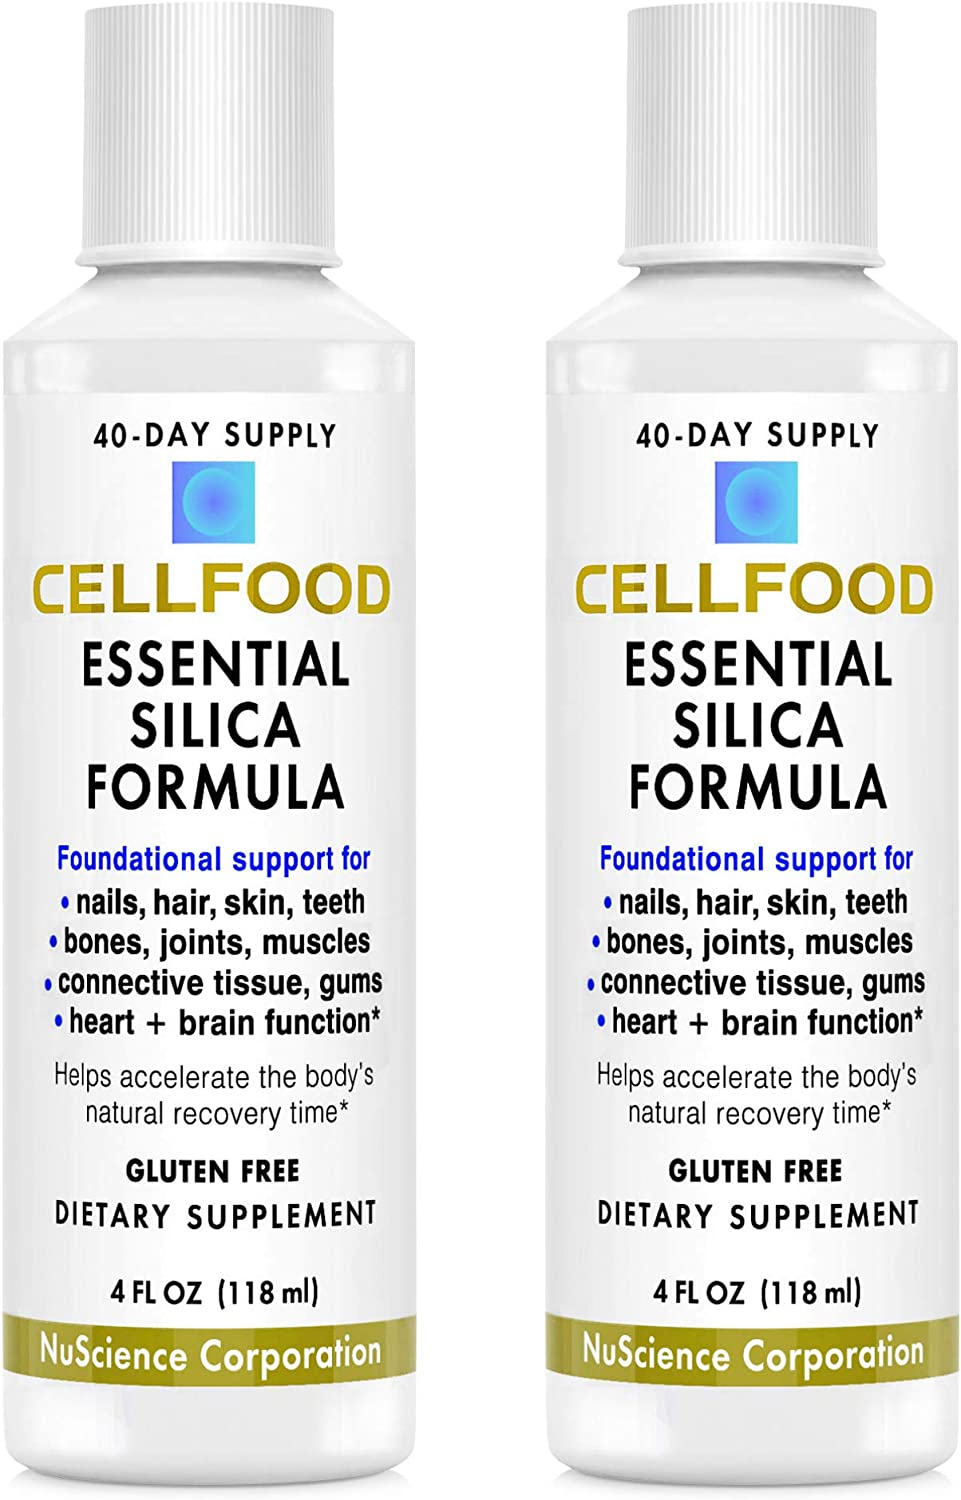 Cellfood Essential Silica favorite Anti-Aging Formula 4 Courier shipping free 2 - Pack fl oz